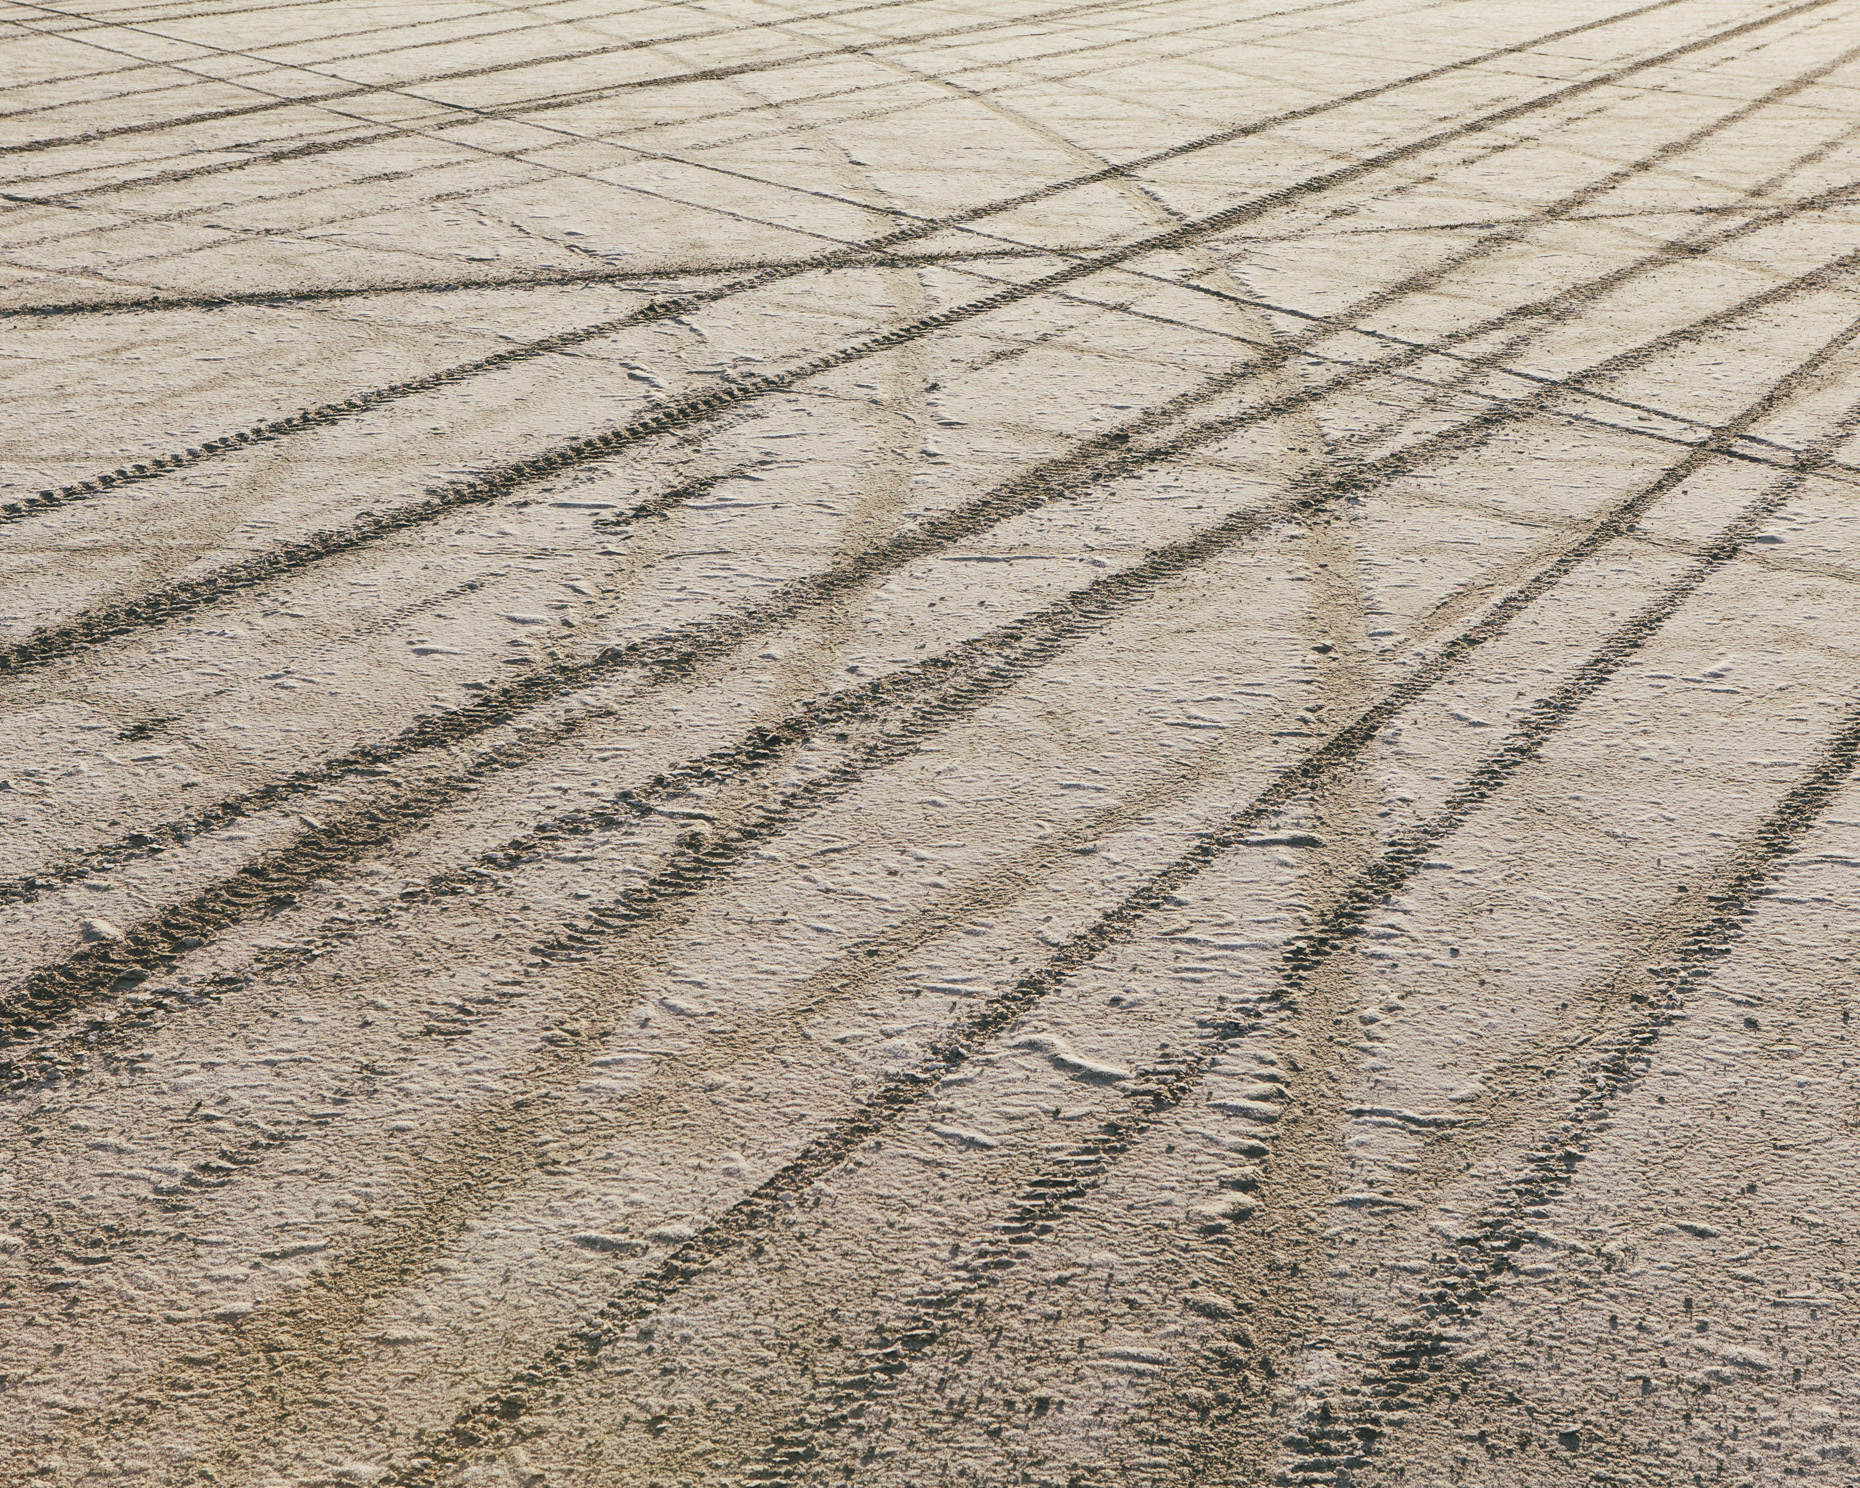 Tire tracks on playa, Black Rock Desert, Nevada - Paul Edmondson